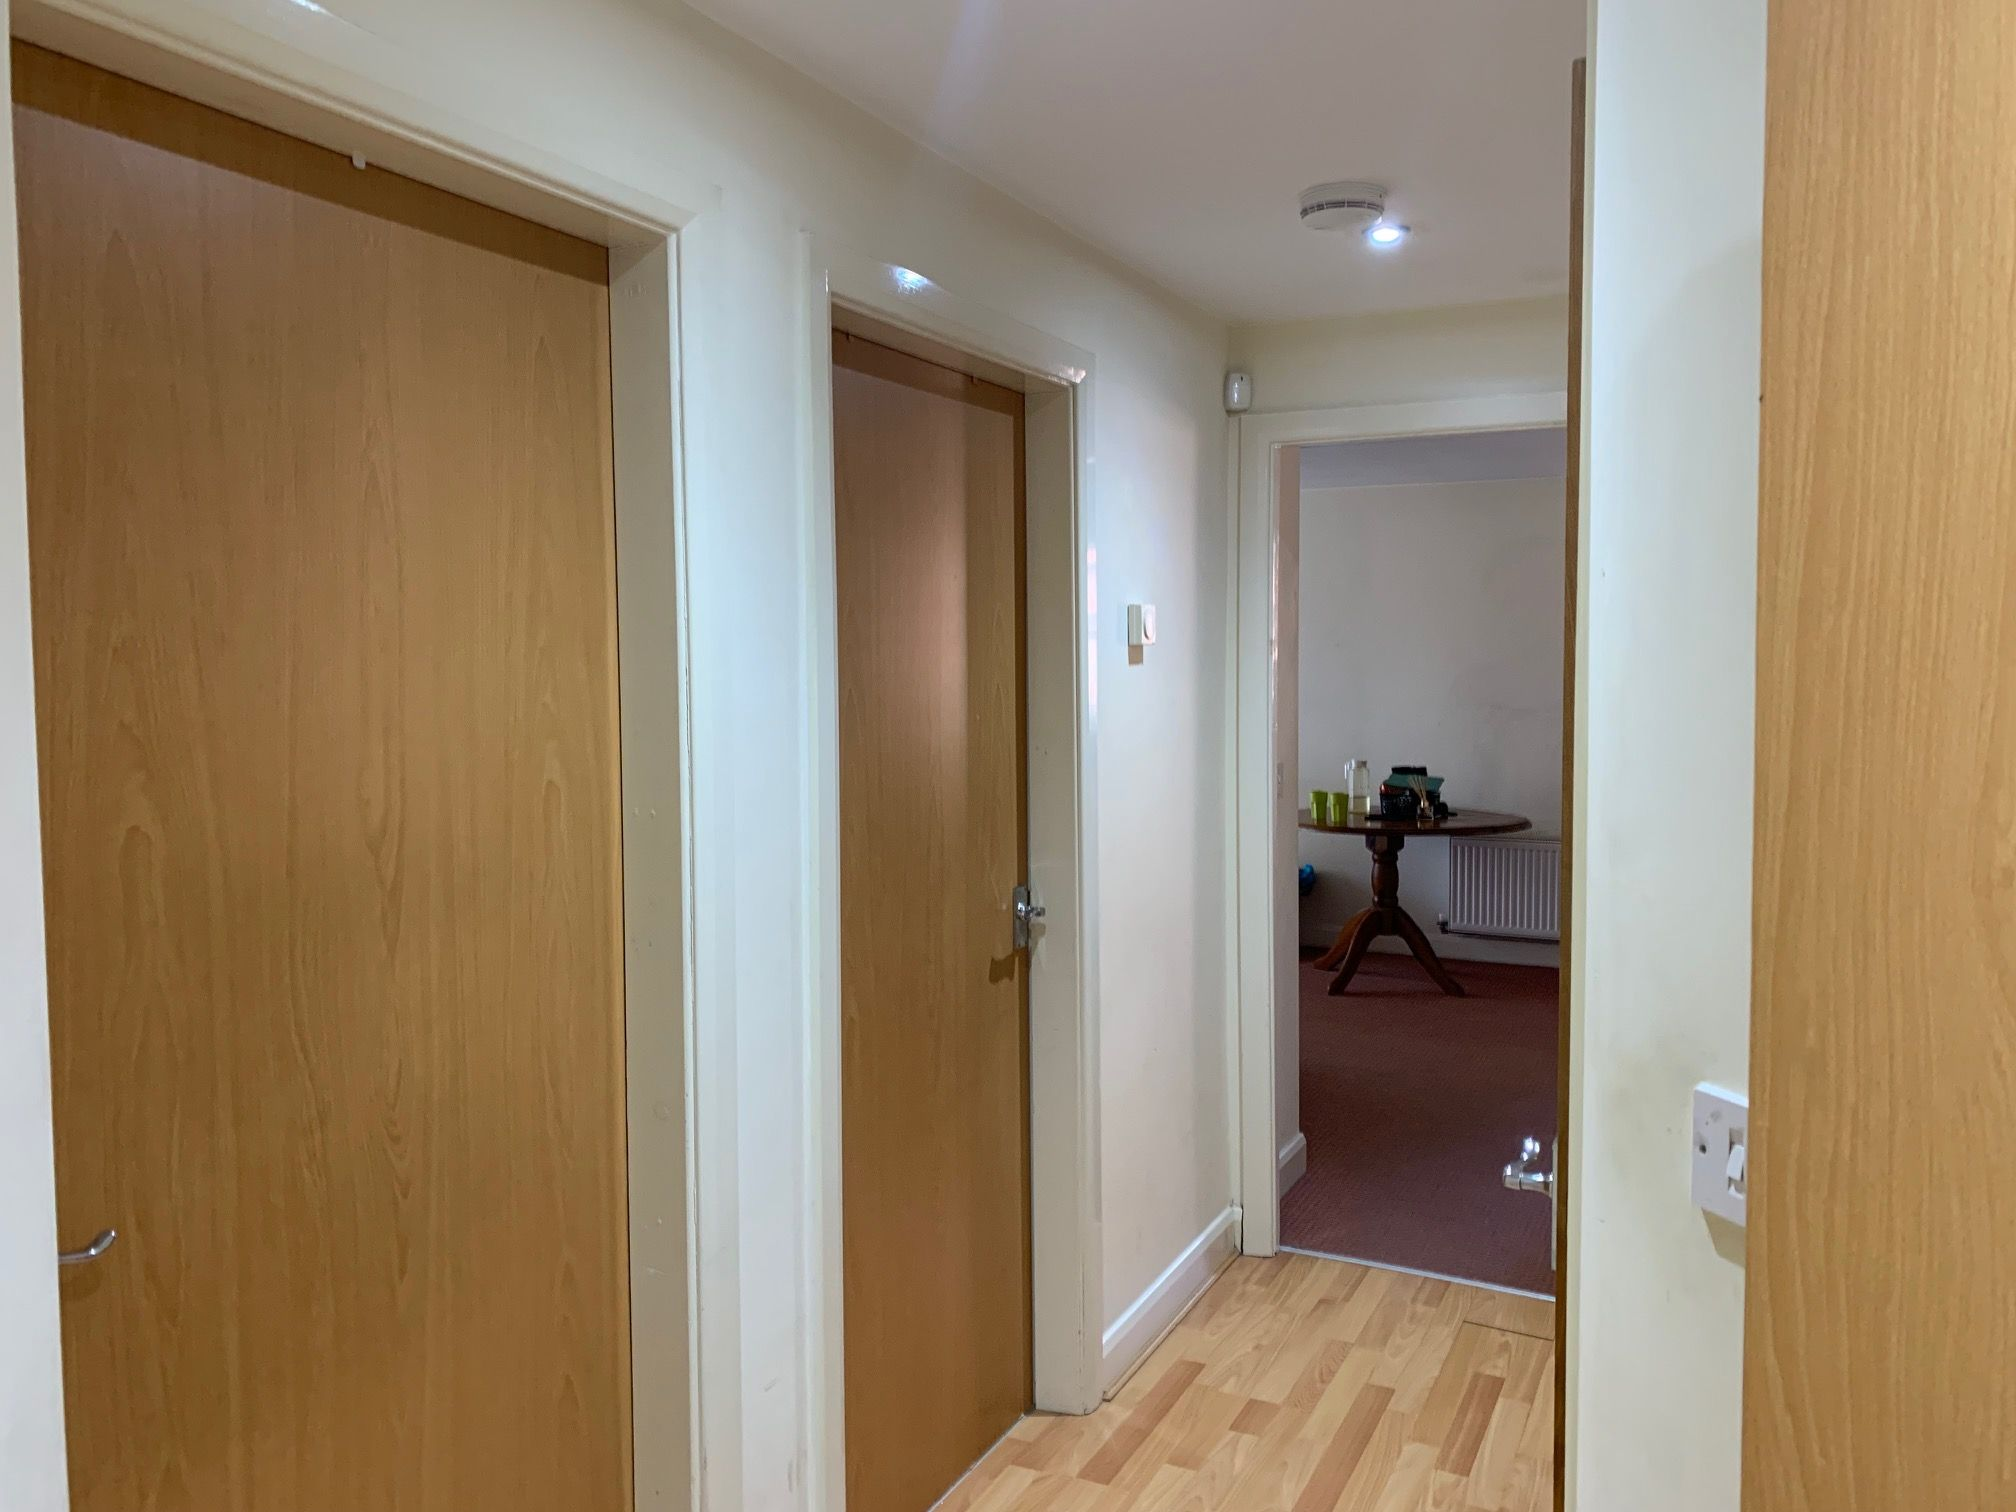 Image 1 of 1 of Hallway, on Accommodation Comprising for .